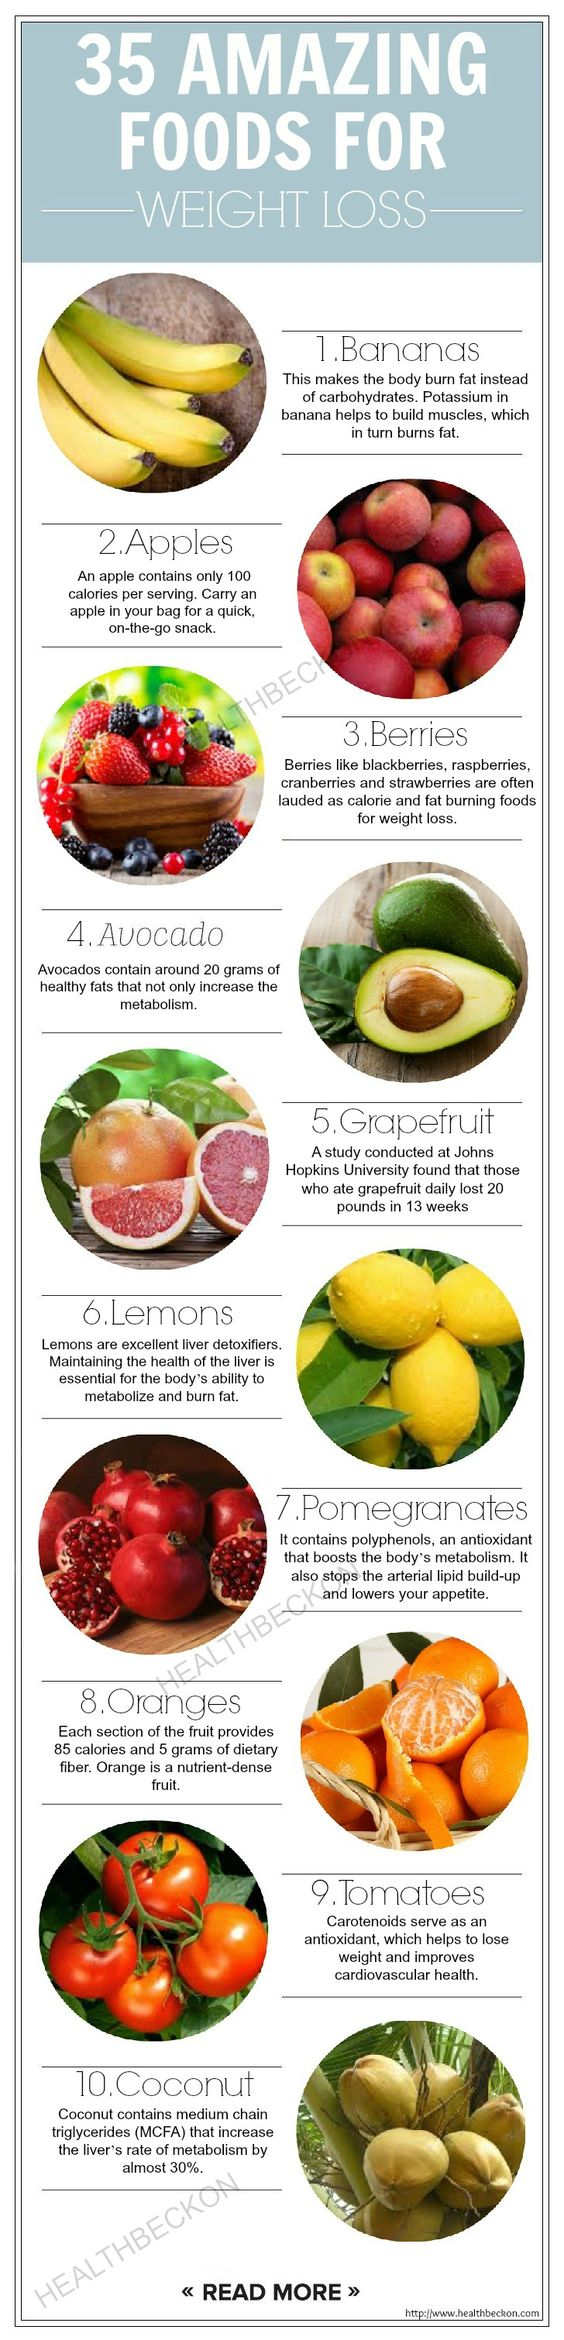 Fast acting fat burning foods